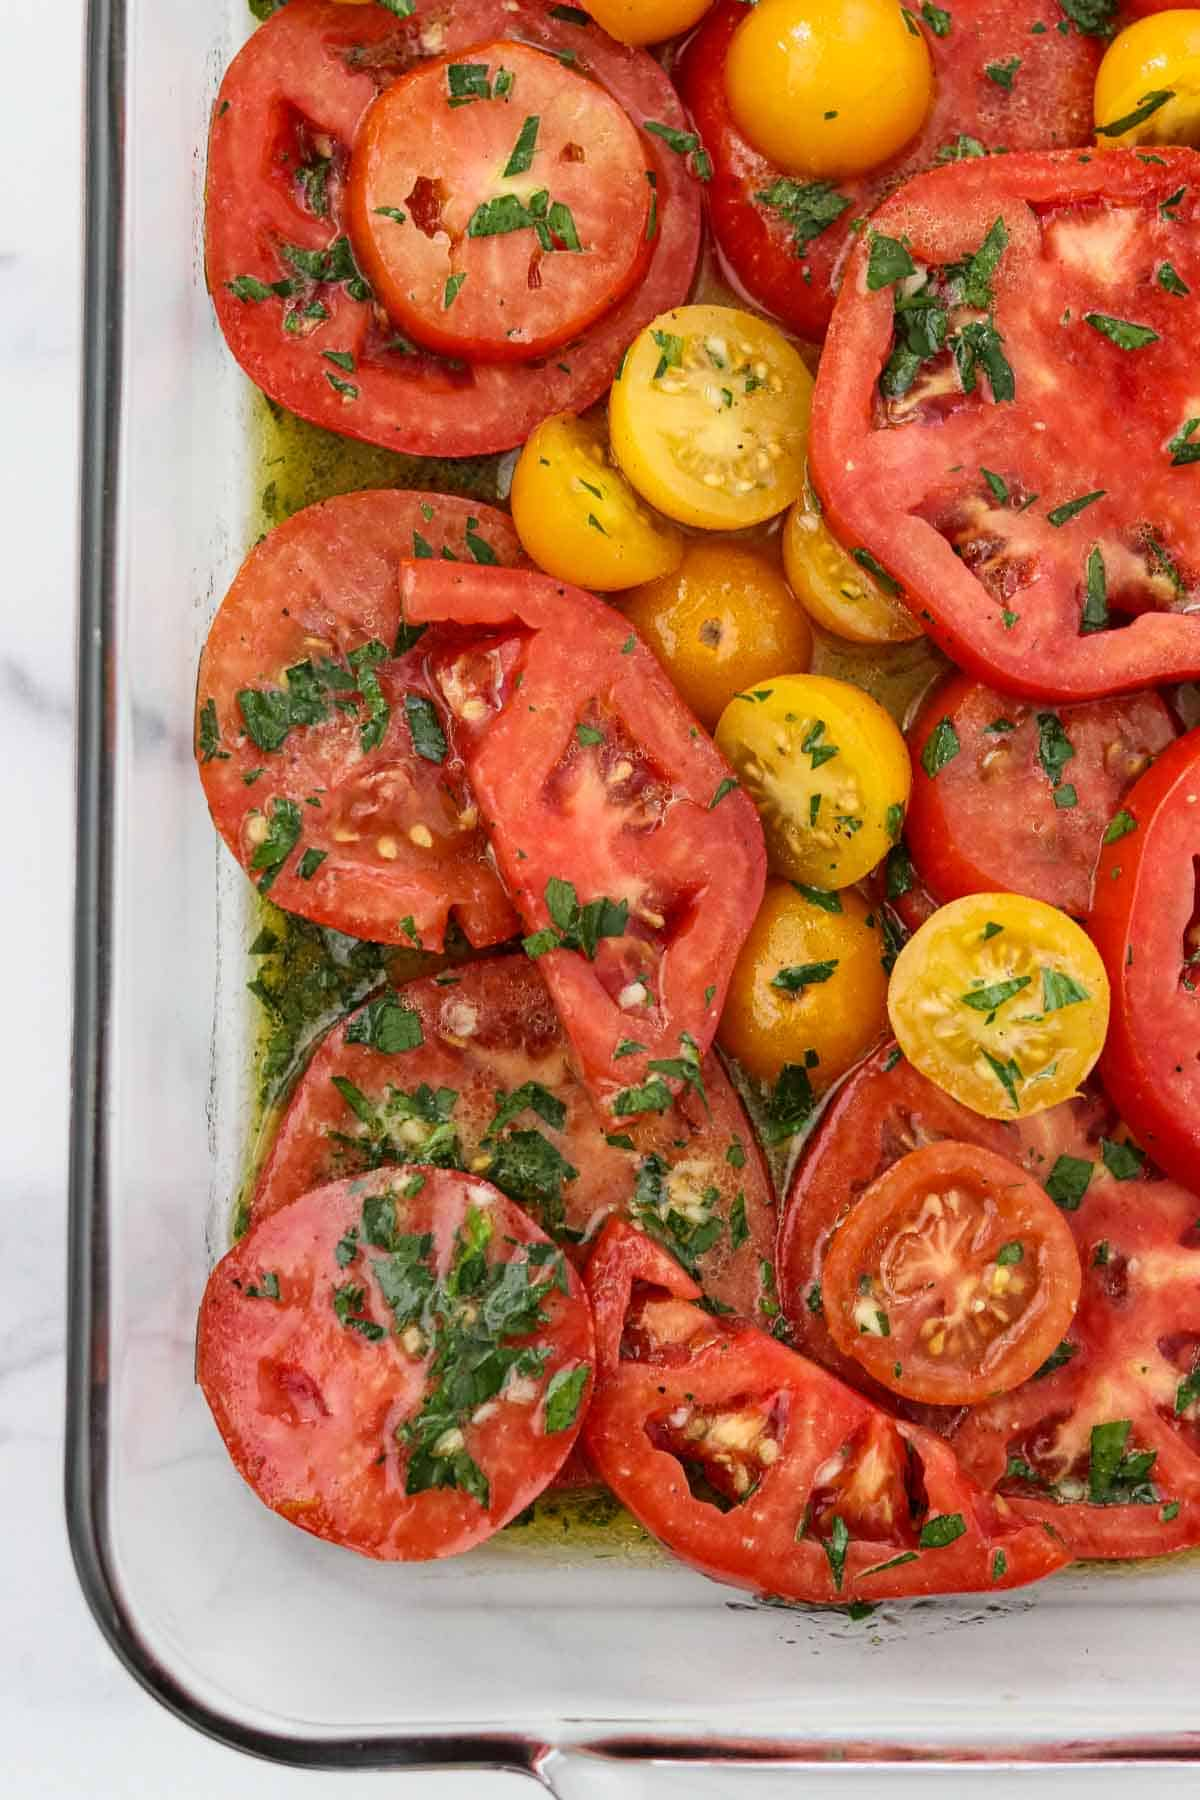 Marinated Garden Tomatoes in a glass dish.